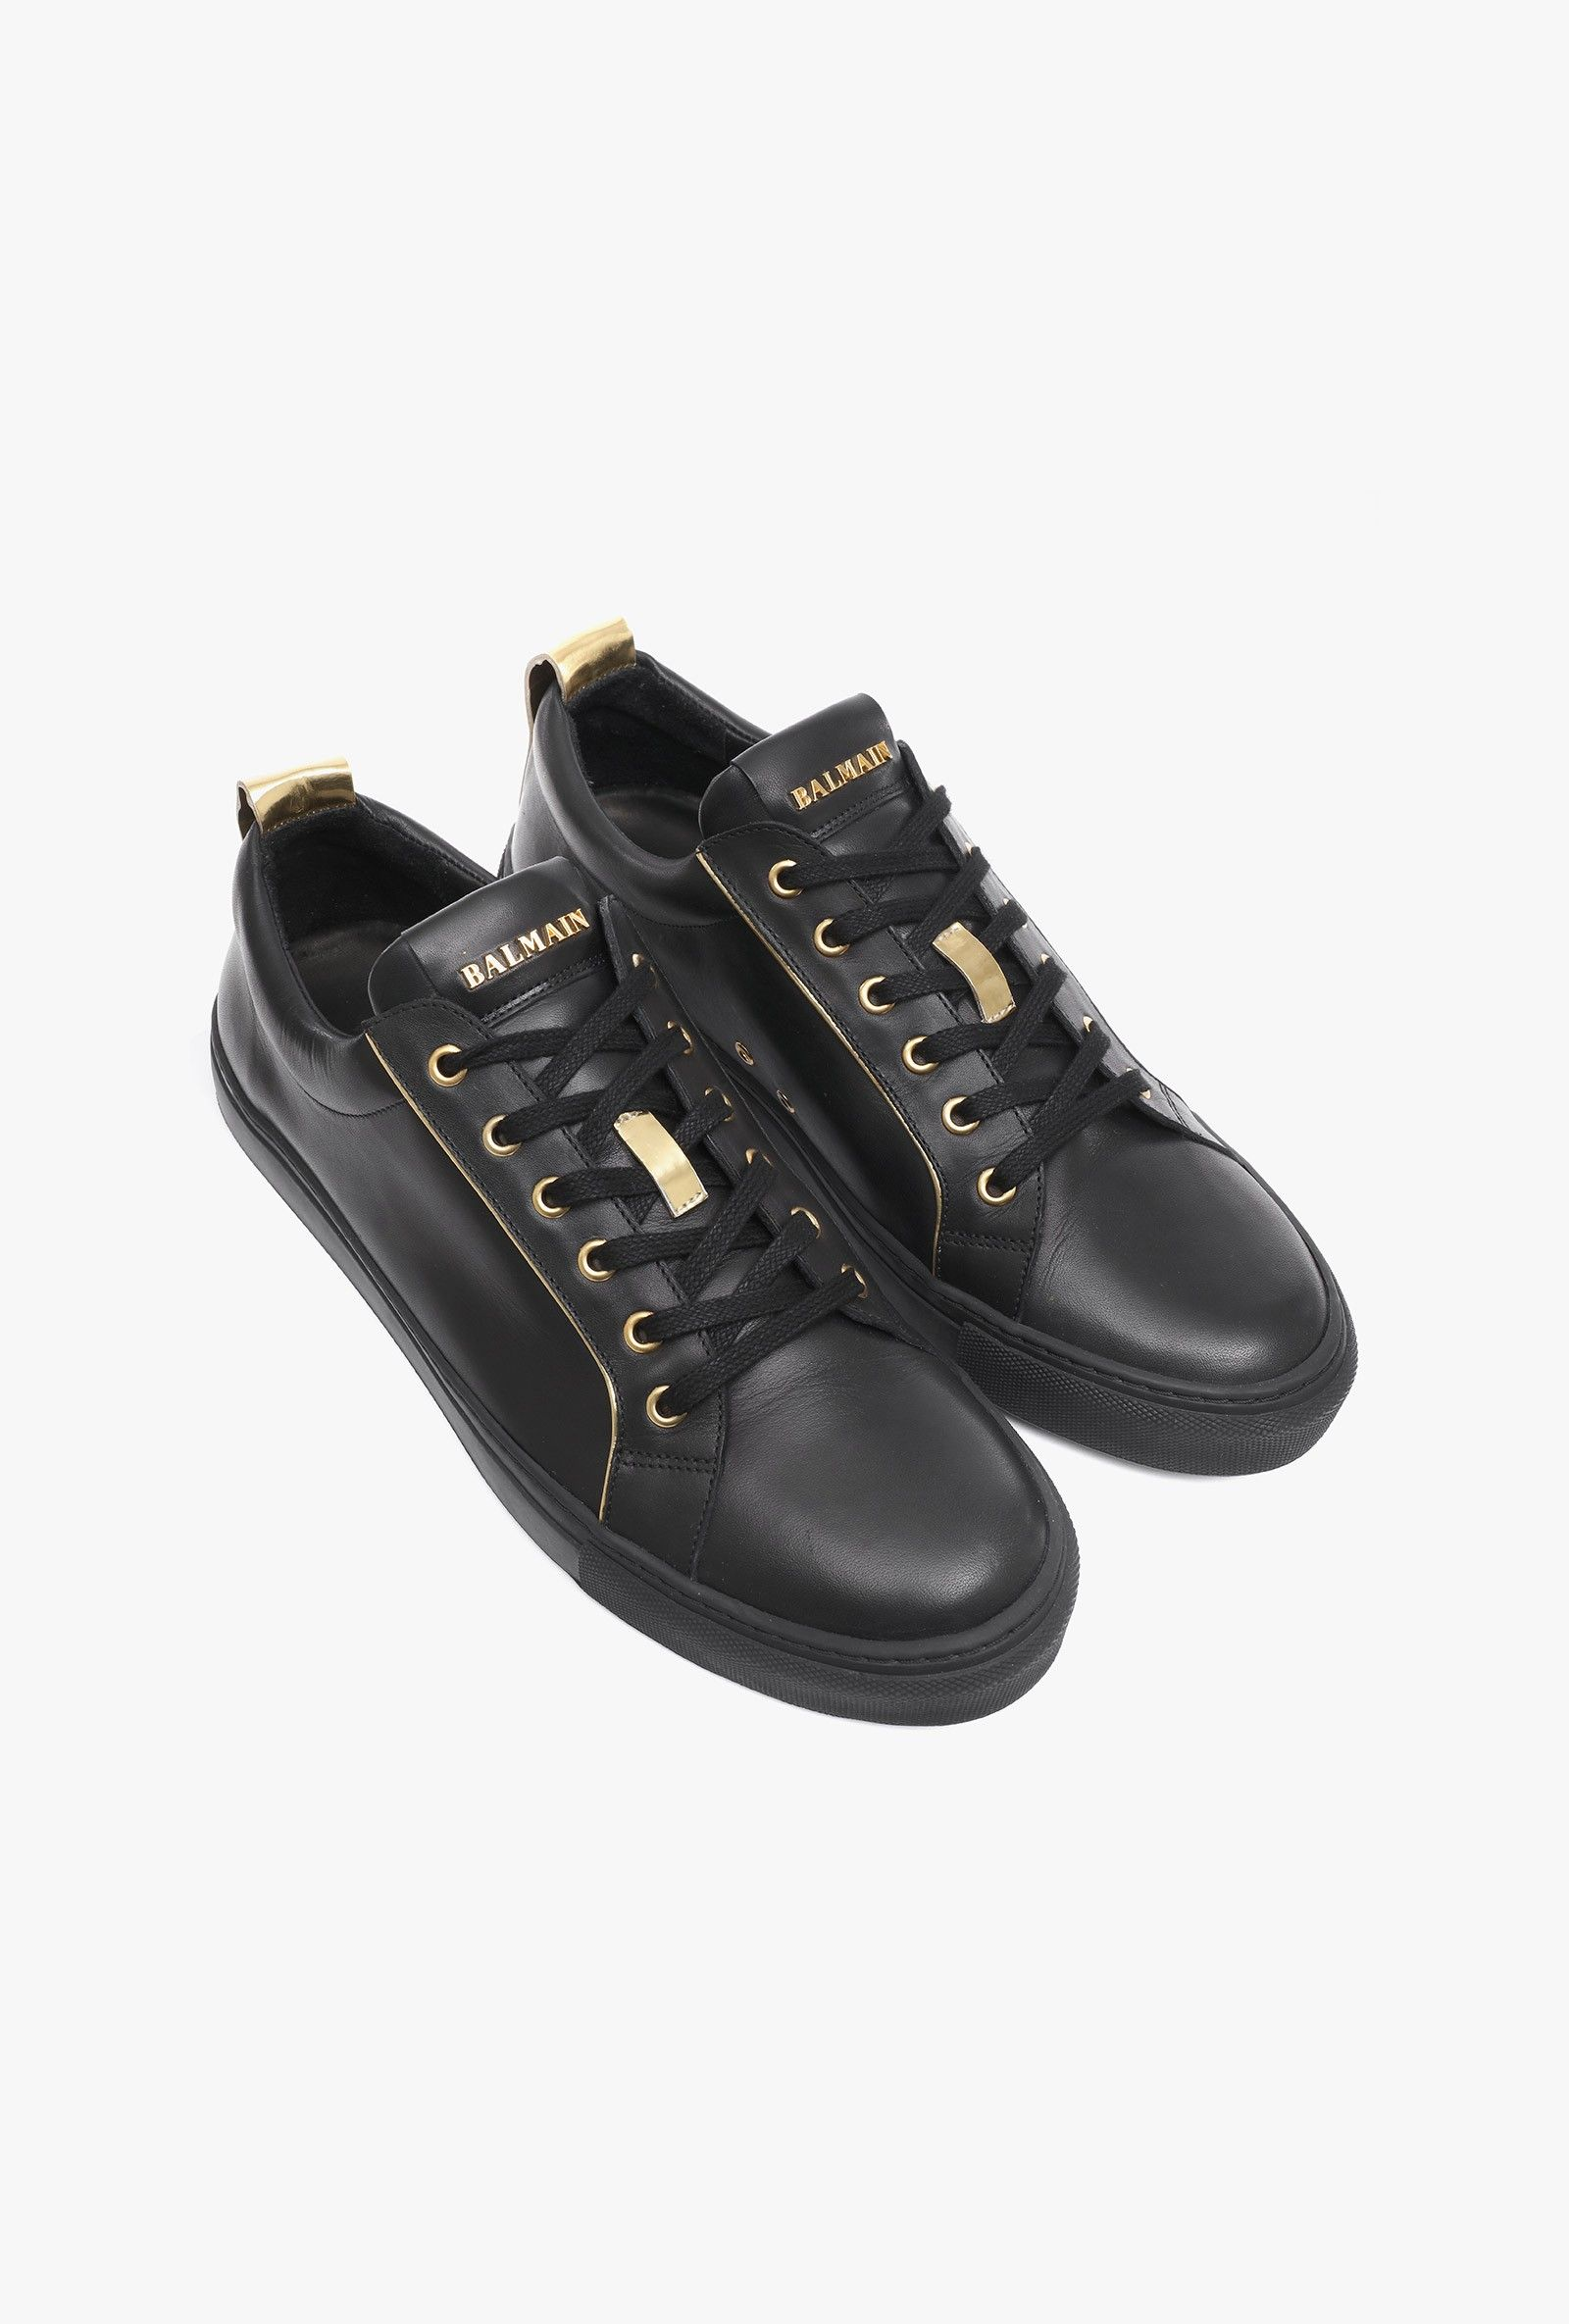 Leather sneakers with gold tone piping | Mens shoes